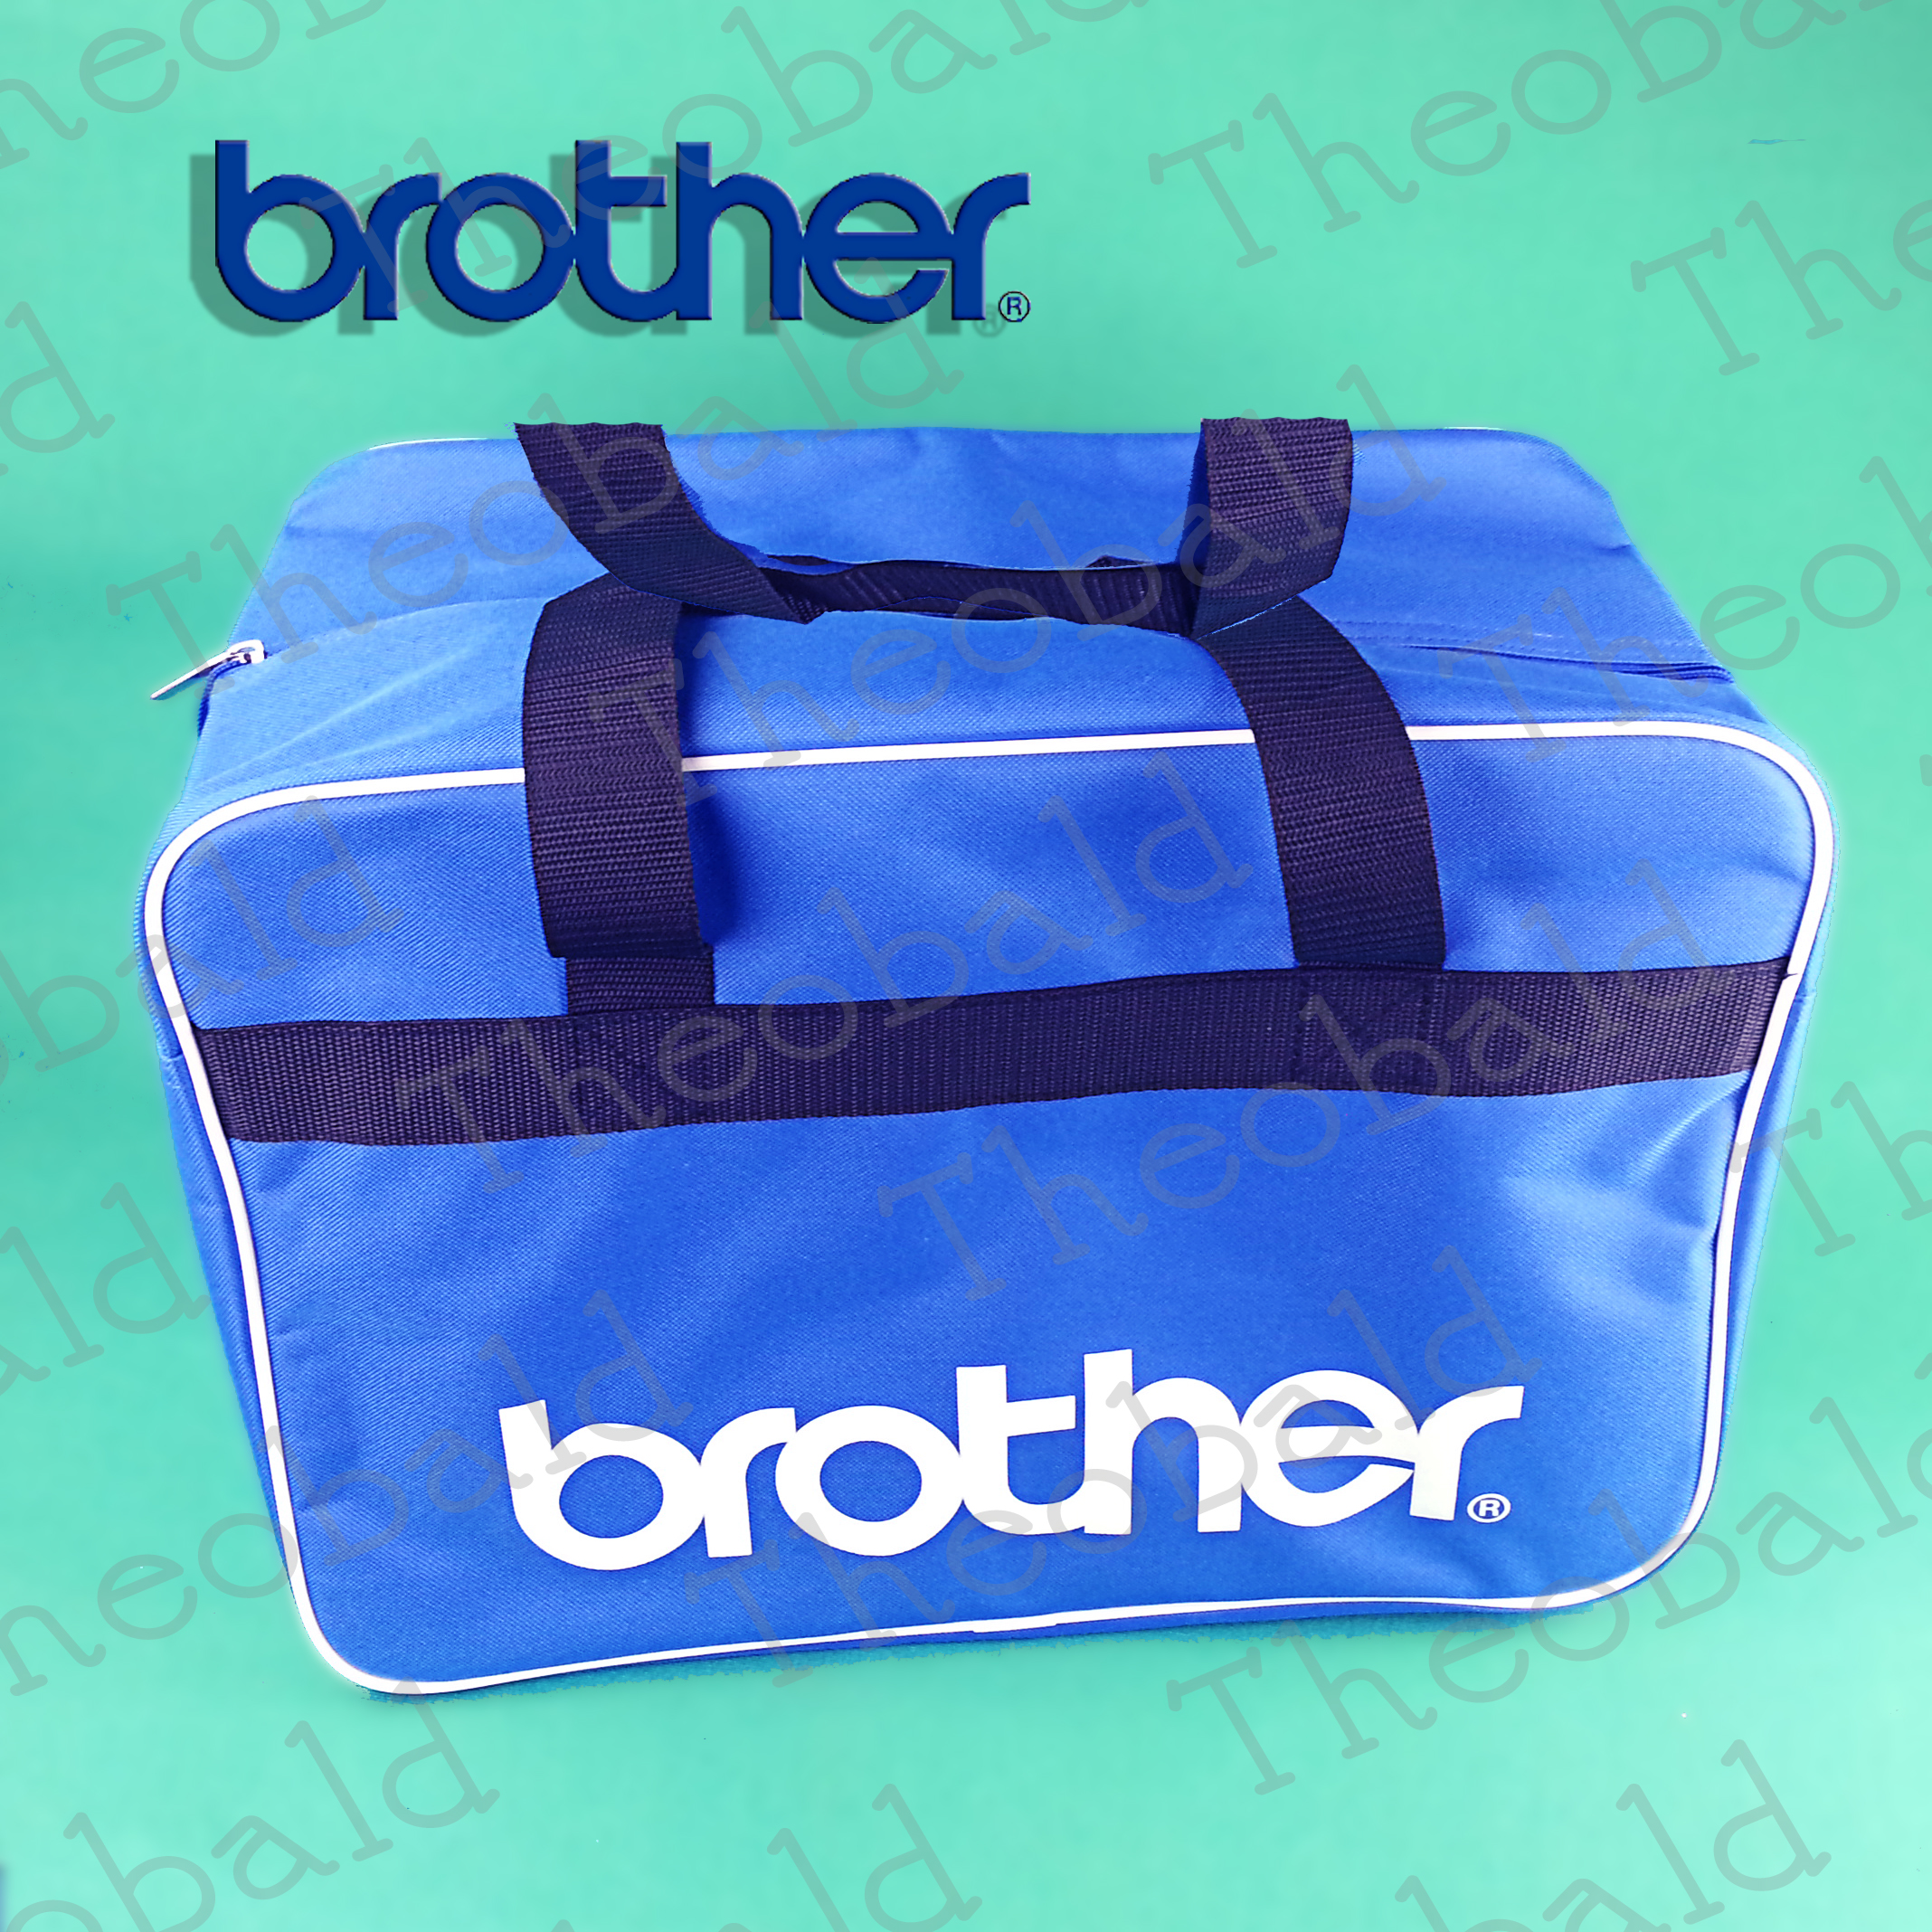 Genuine brother sewing machine carry case bag practical